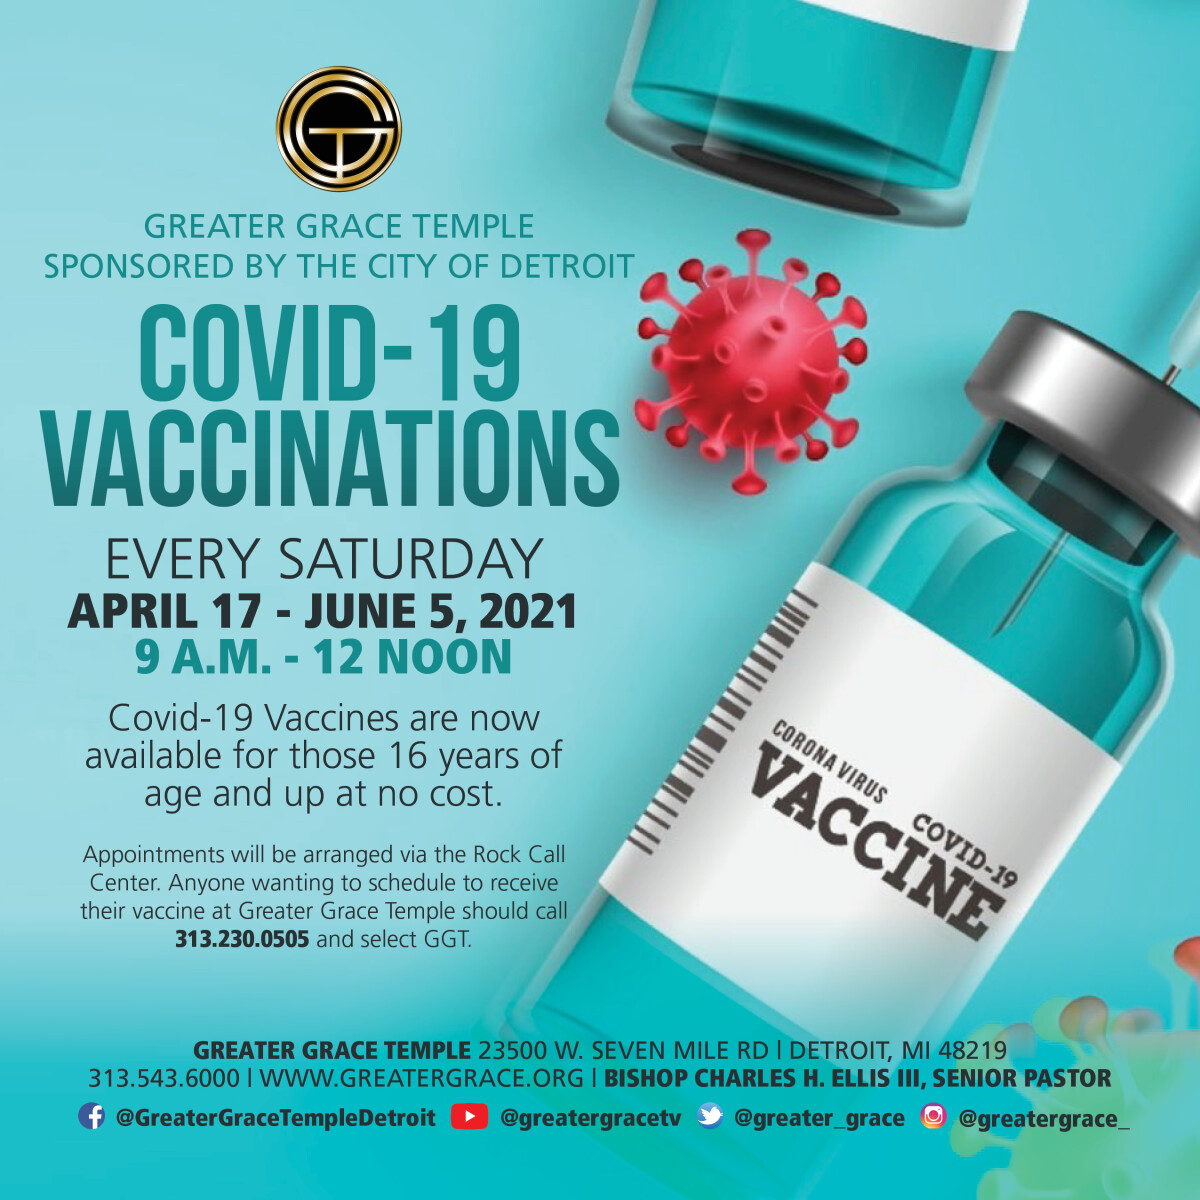 COVID-19 Vaccinations